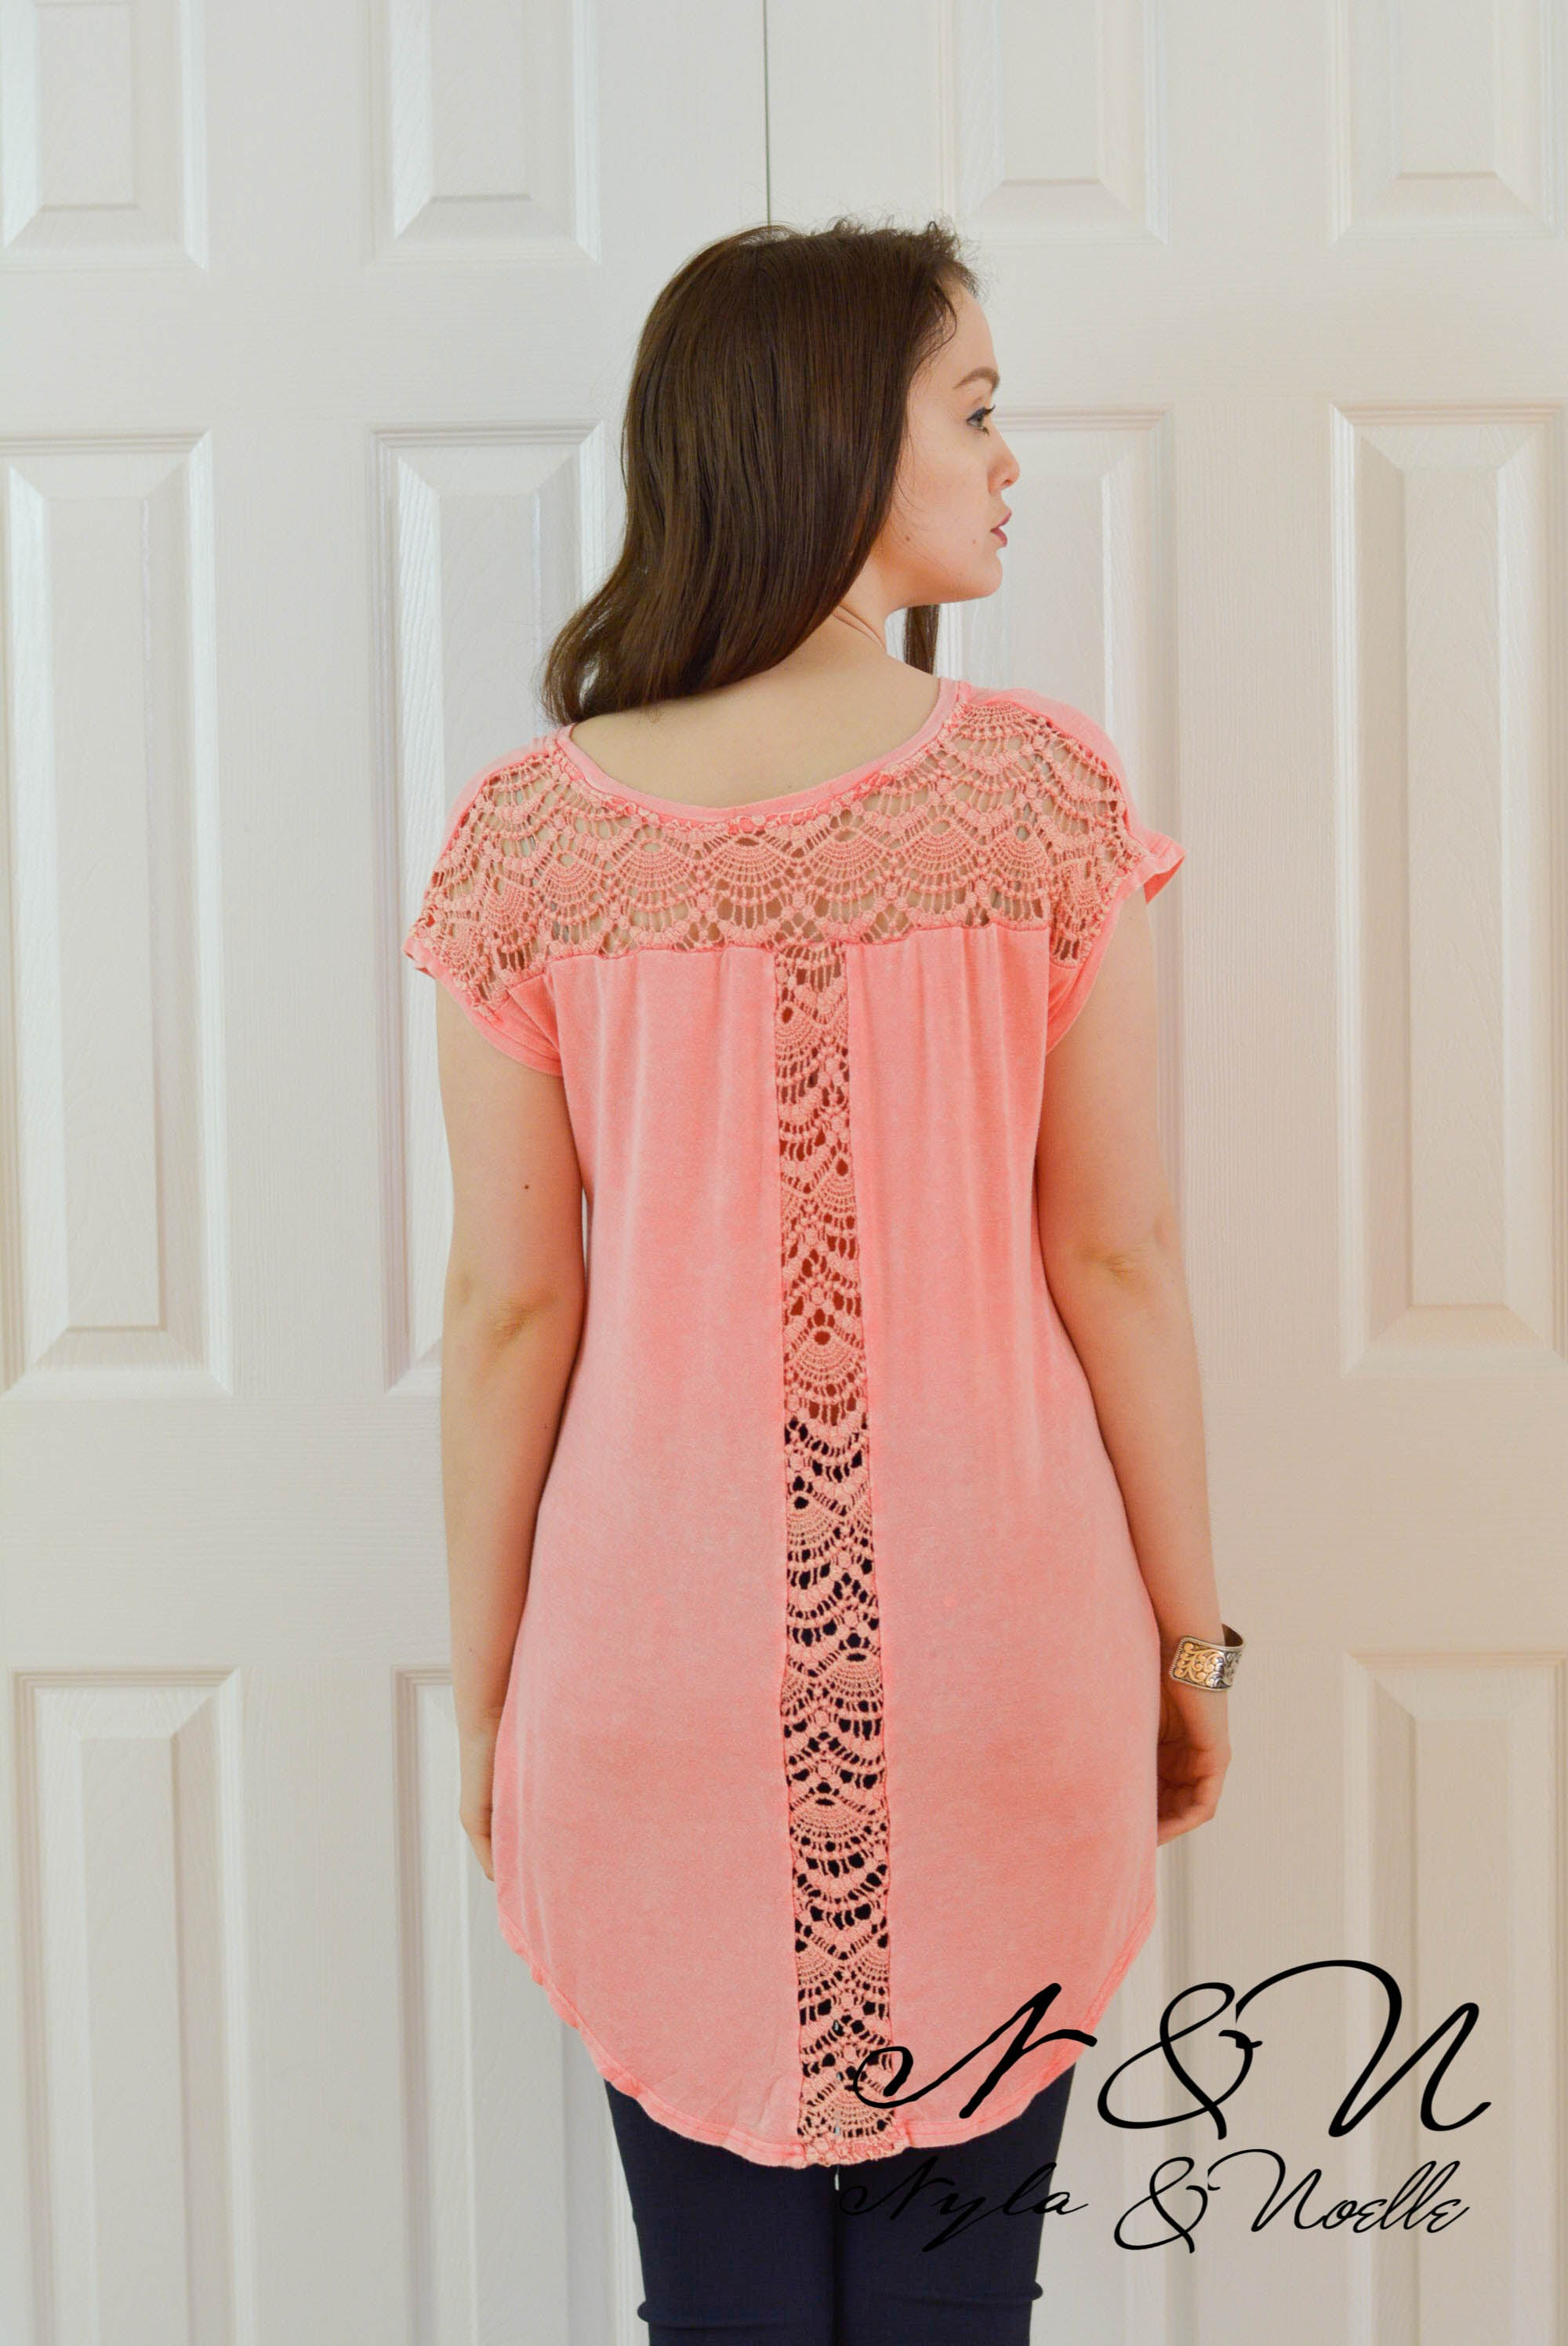 IUKA ROAD - Coral Tunic Length TShirt with Crochet Lace Panels